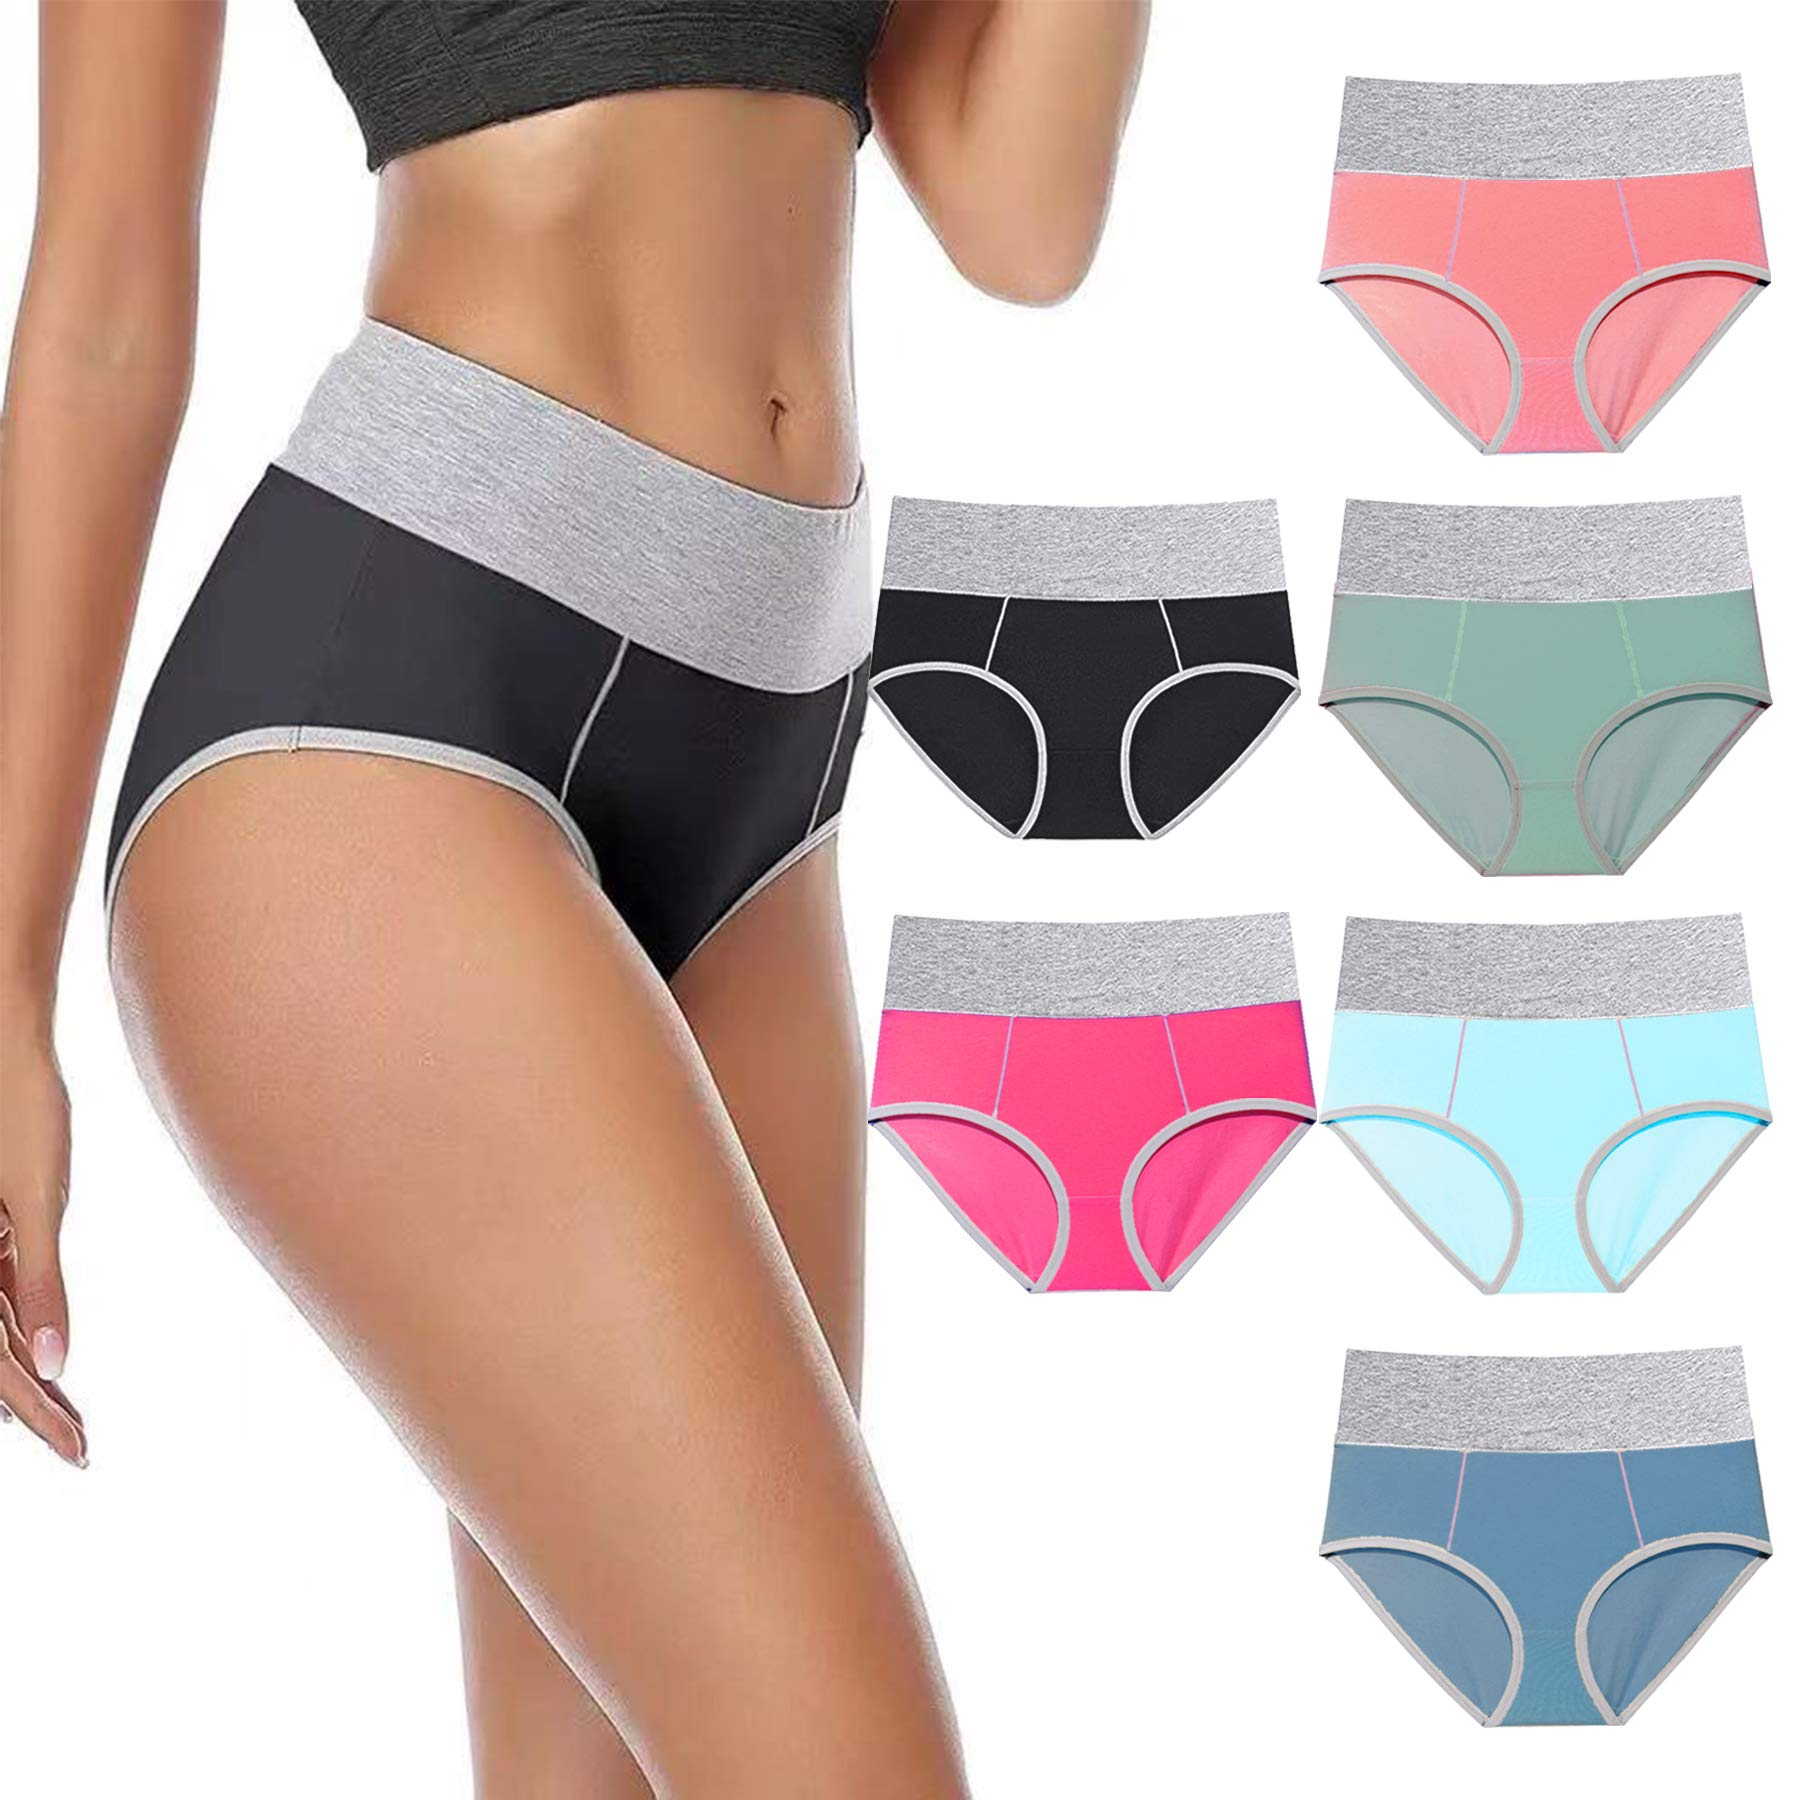 Women's Underwear High Waisted Soft Breathable Panties Full Coverage Stretch Ladies Briefs